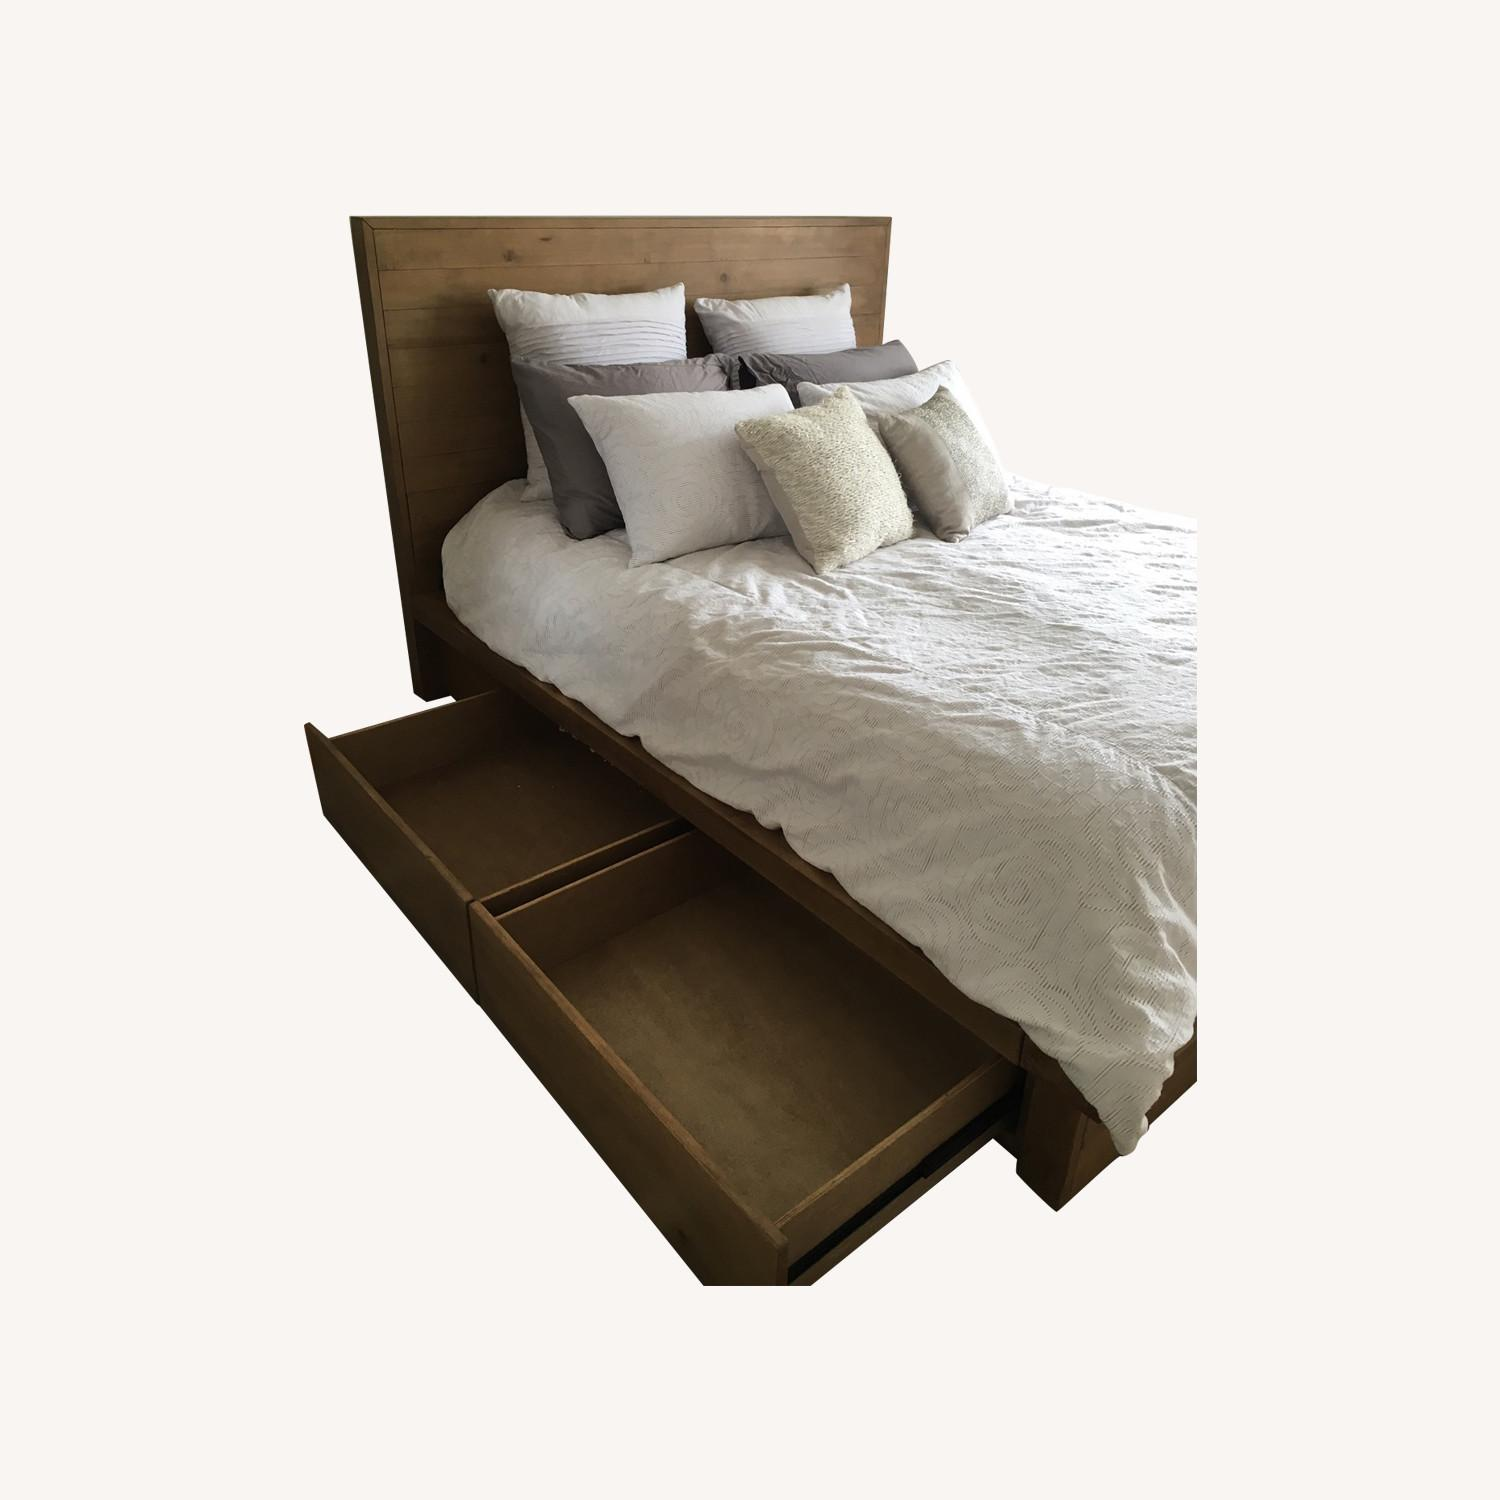 Macys Queen Wood Bedframe with Four Drawers - image-0